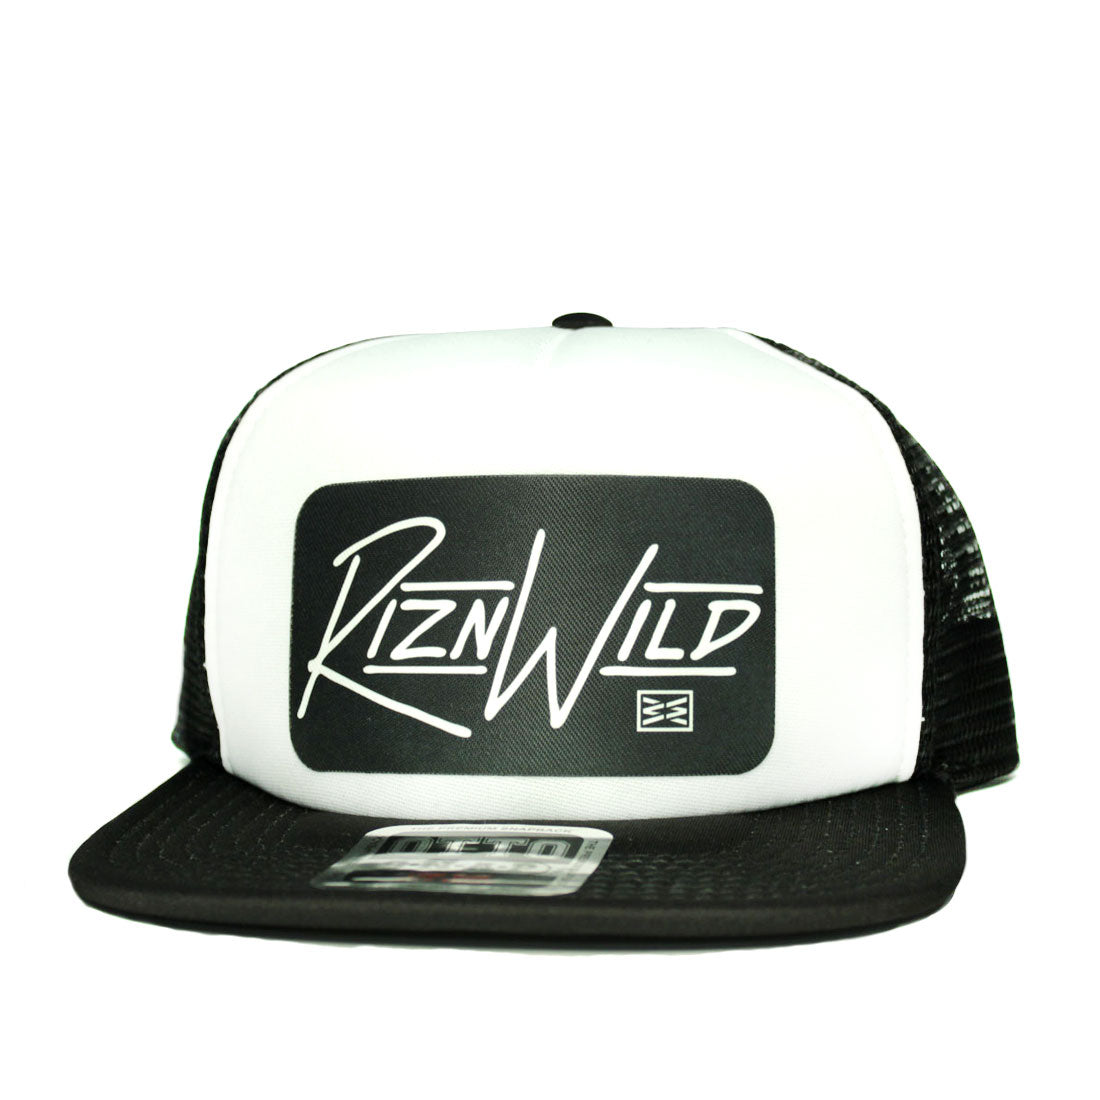 RIZNWILD | Men's flat bill trucker hat with patch black and white cap